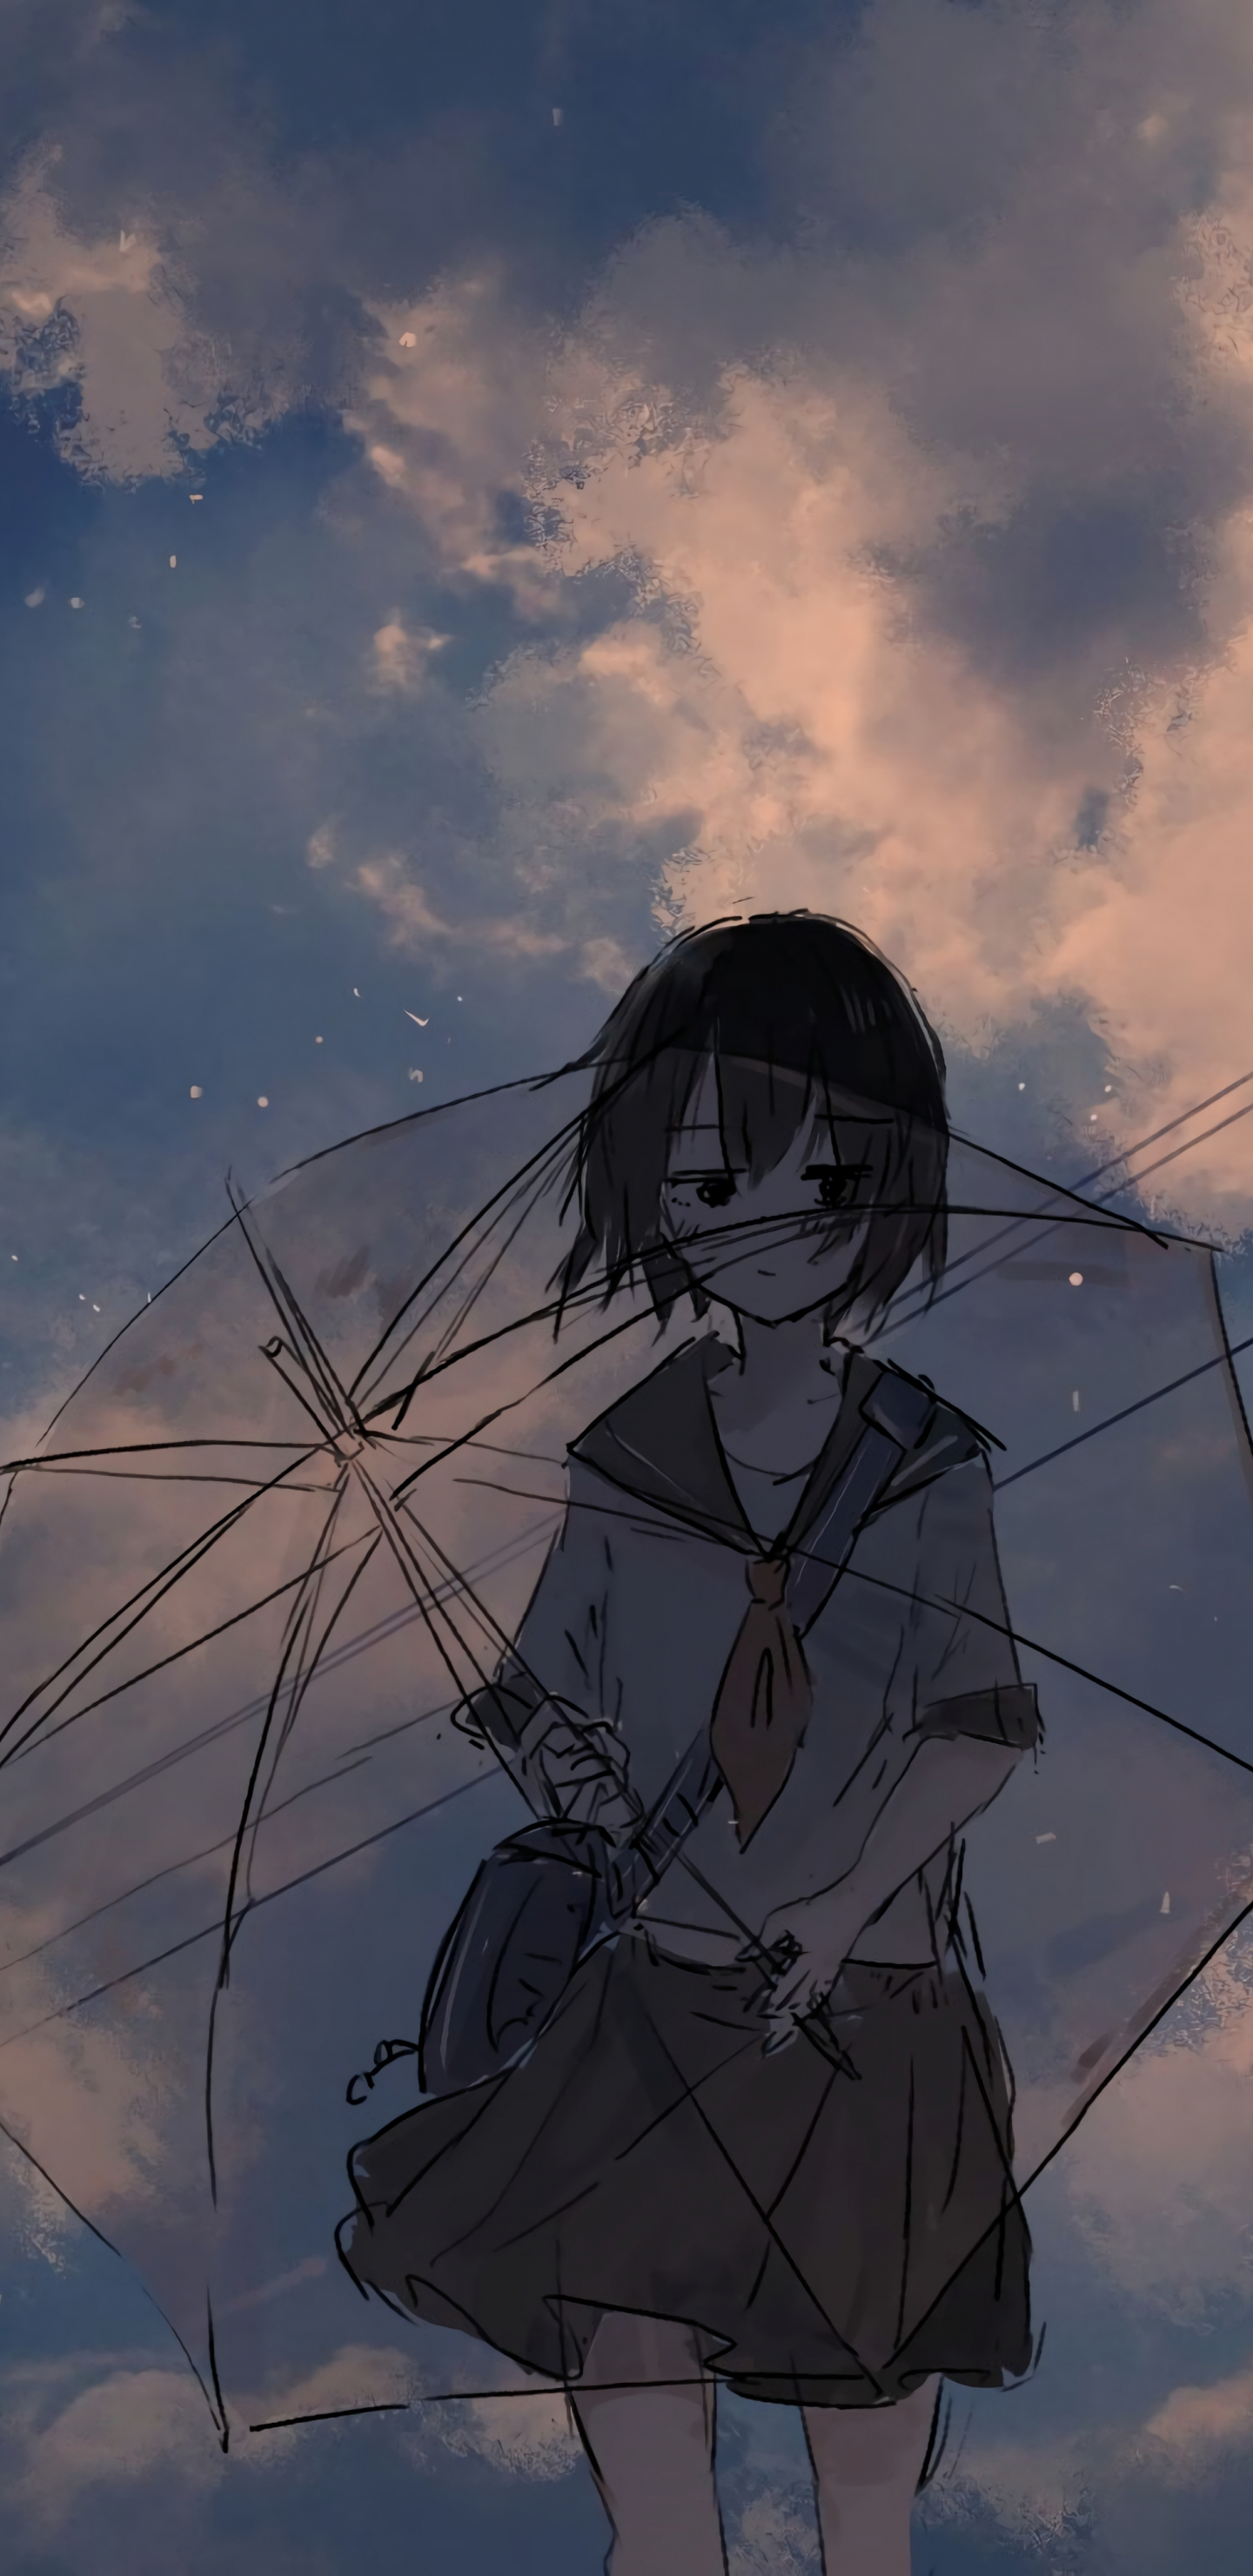 Download 1440x2960 Wallpaper Anime Girl And Umbrella Art Samsung Galaxy S8 Samsung Galaxy S8 Plus 1440x2960 Hd Image Background 24688